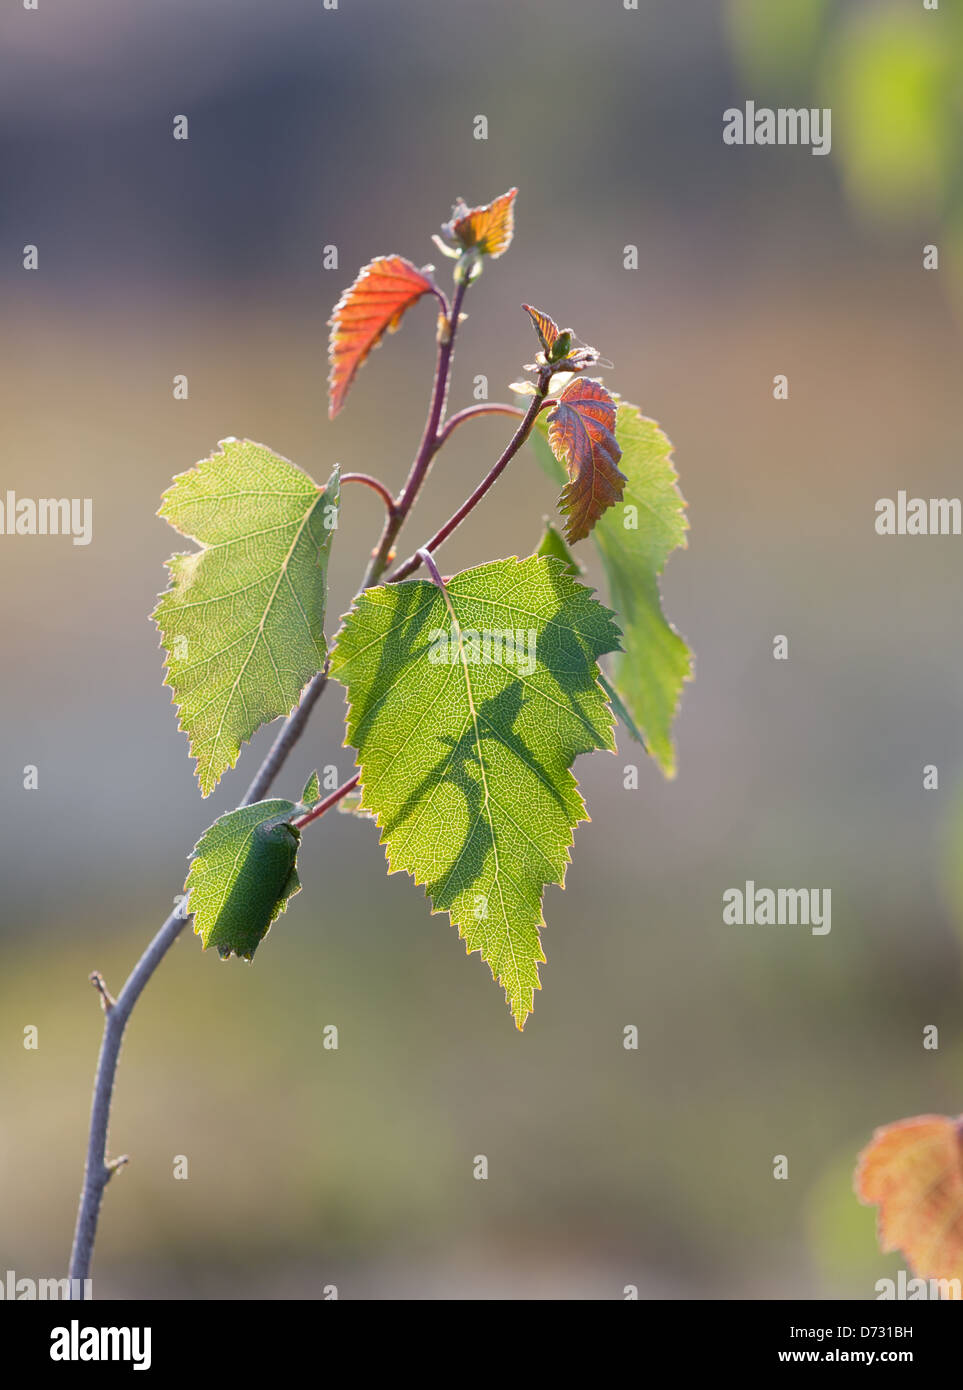 The spring birch leaves - Stock Image